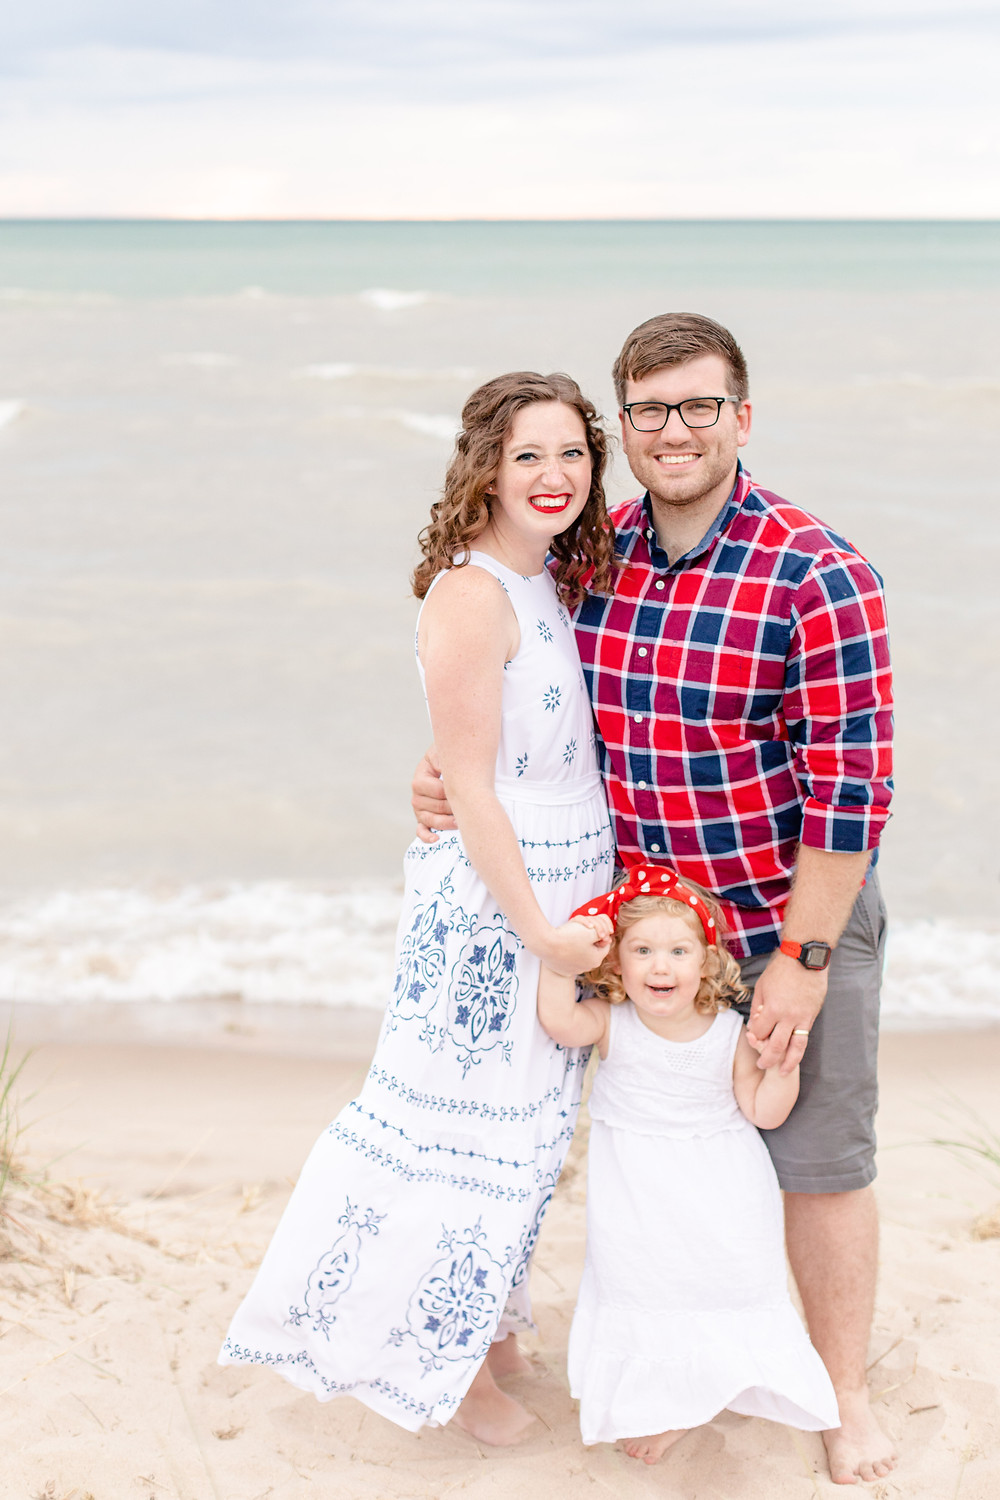 mom dad and daughter on the beach Lake Michigan south haven family shoot red white and blue outfits